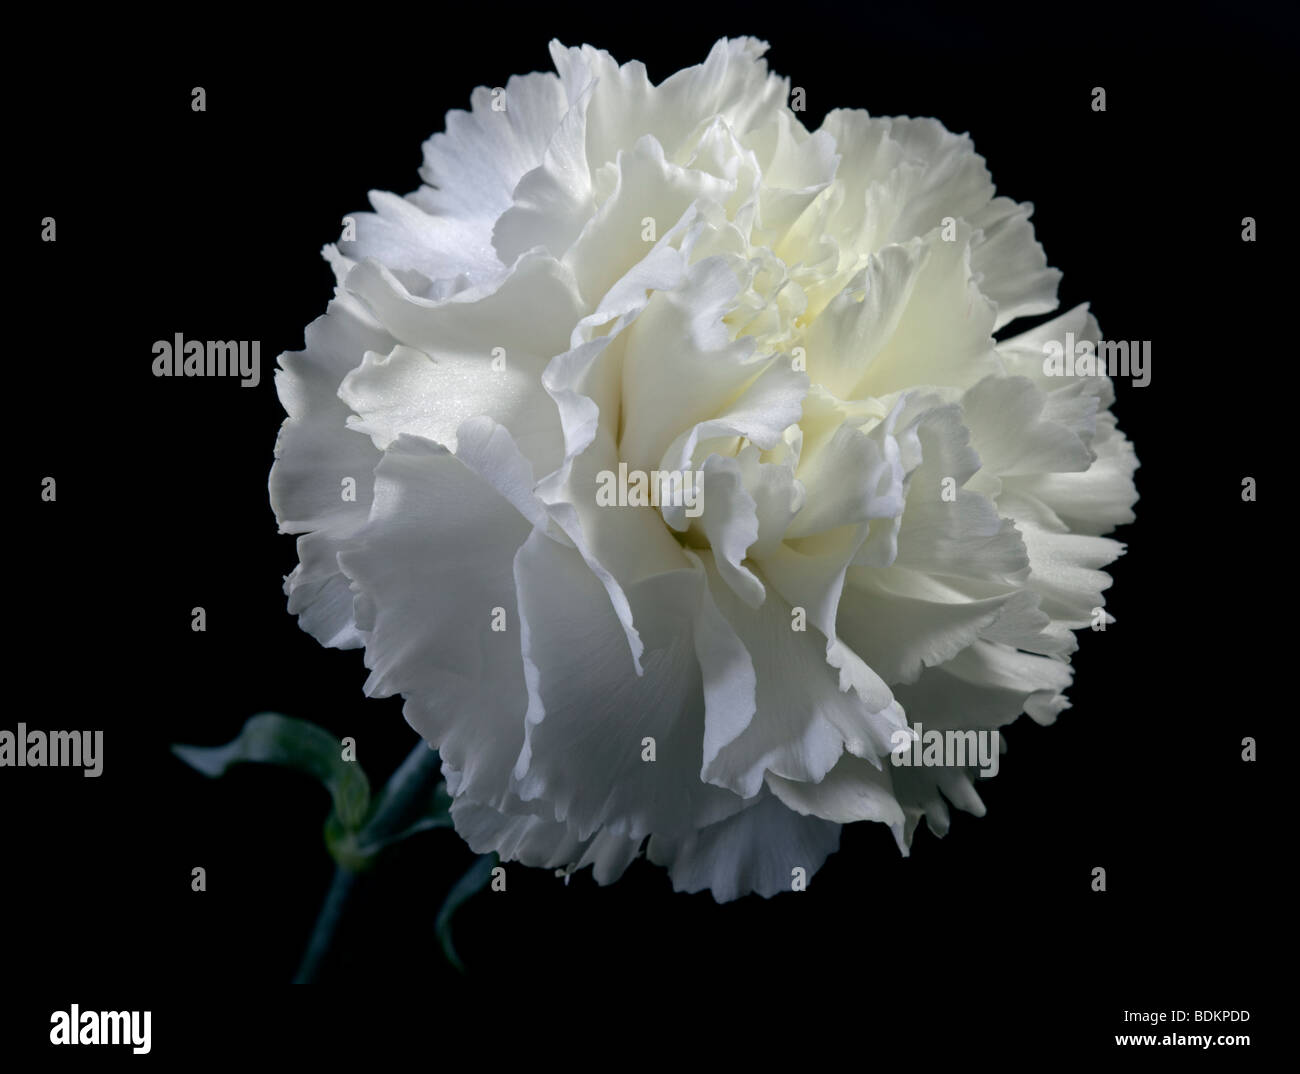 White Carnation - Stock Image